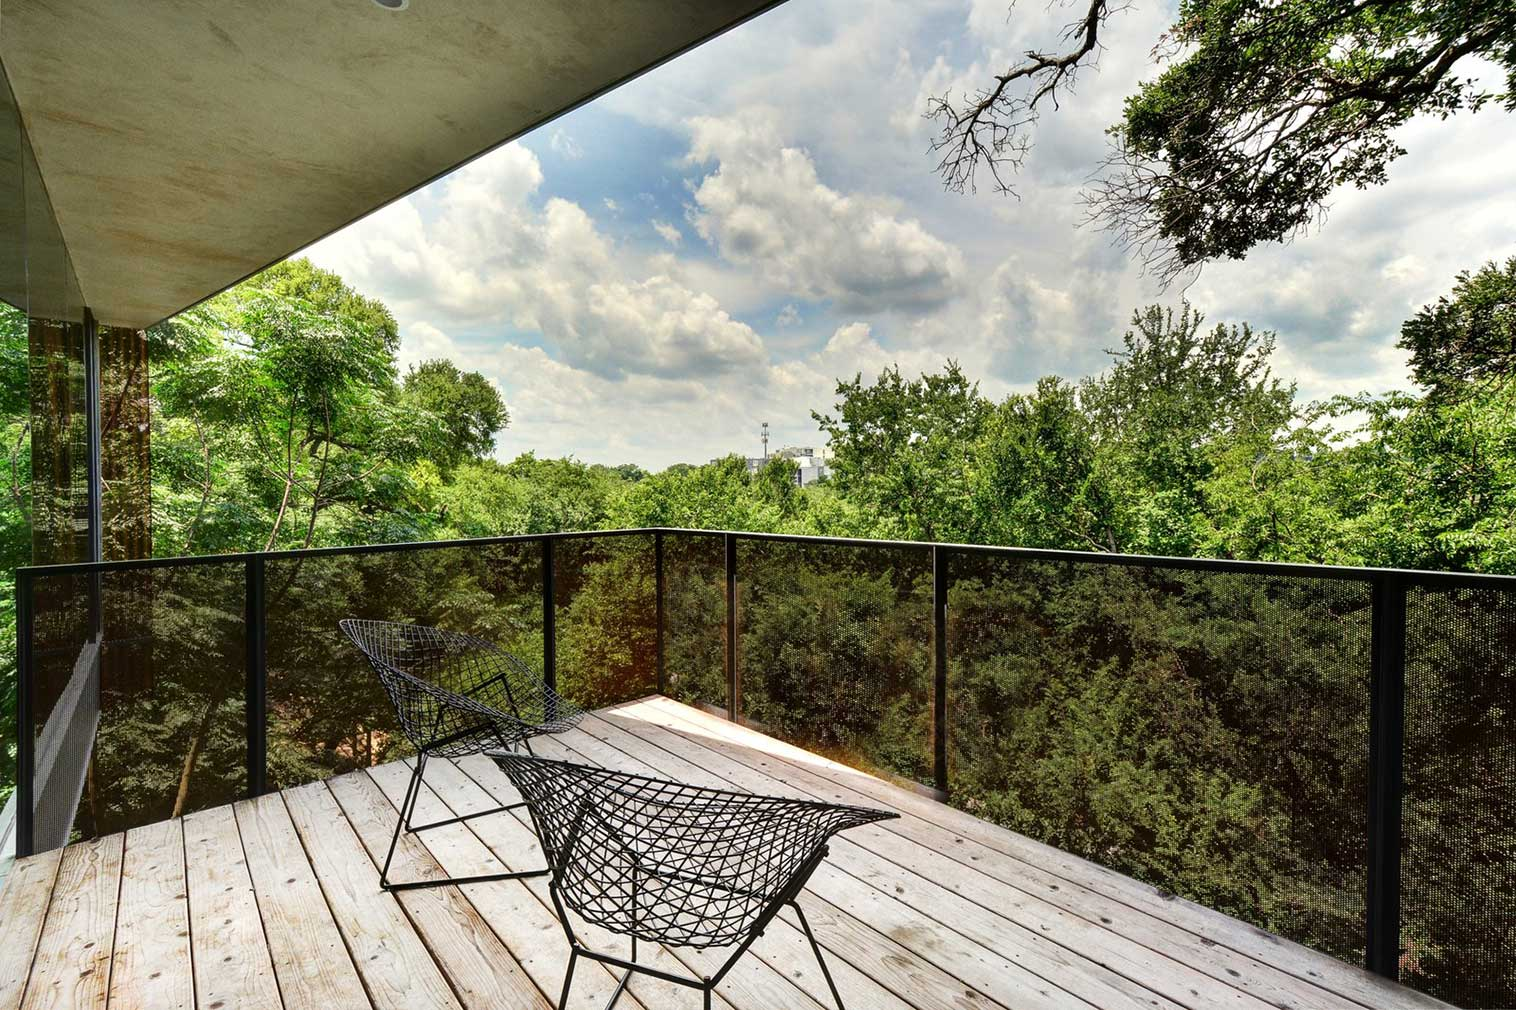 South 5th Residence - a property for sale in Austin, Texas